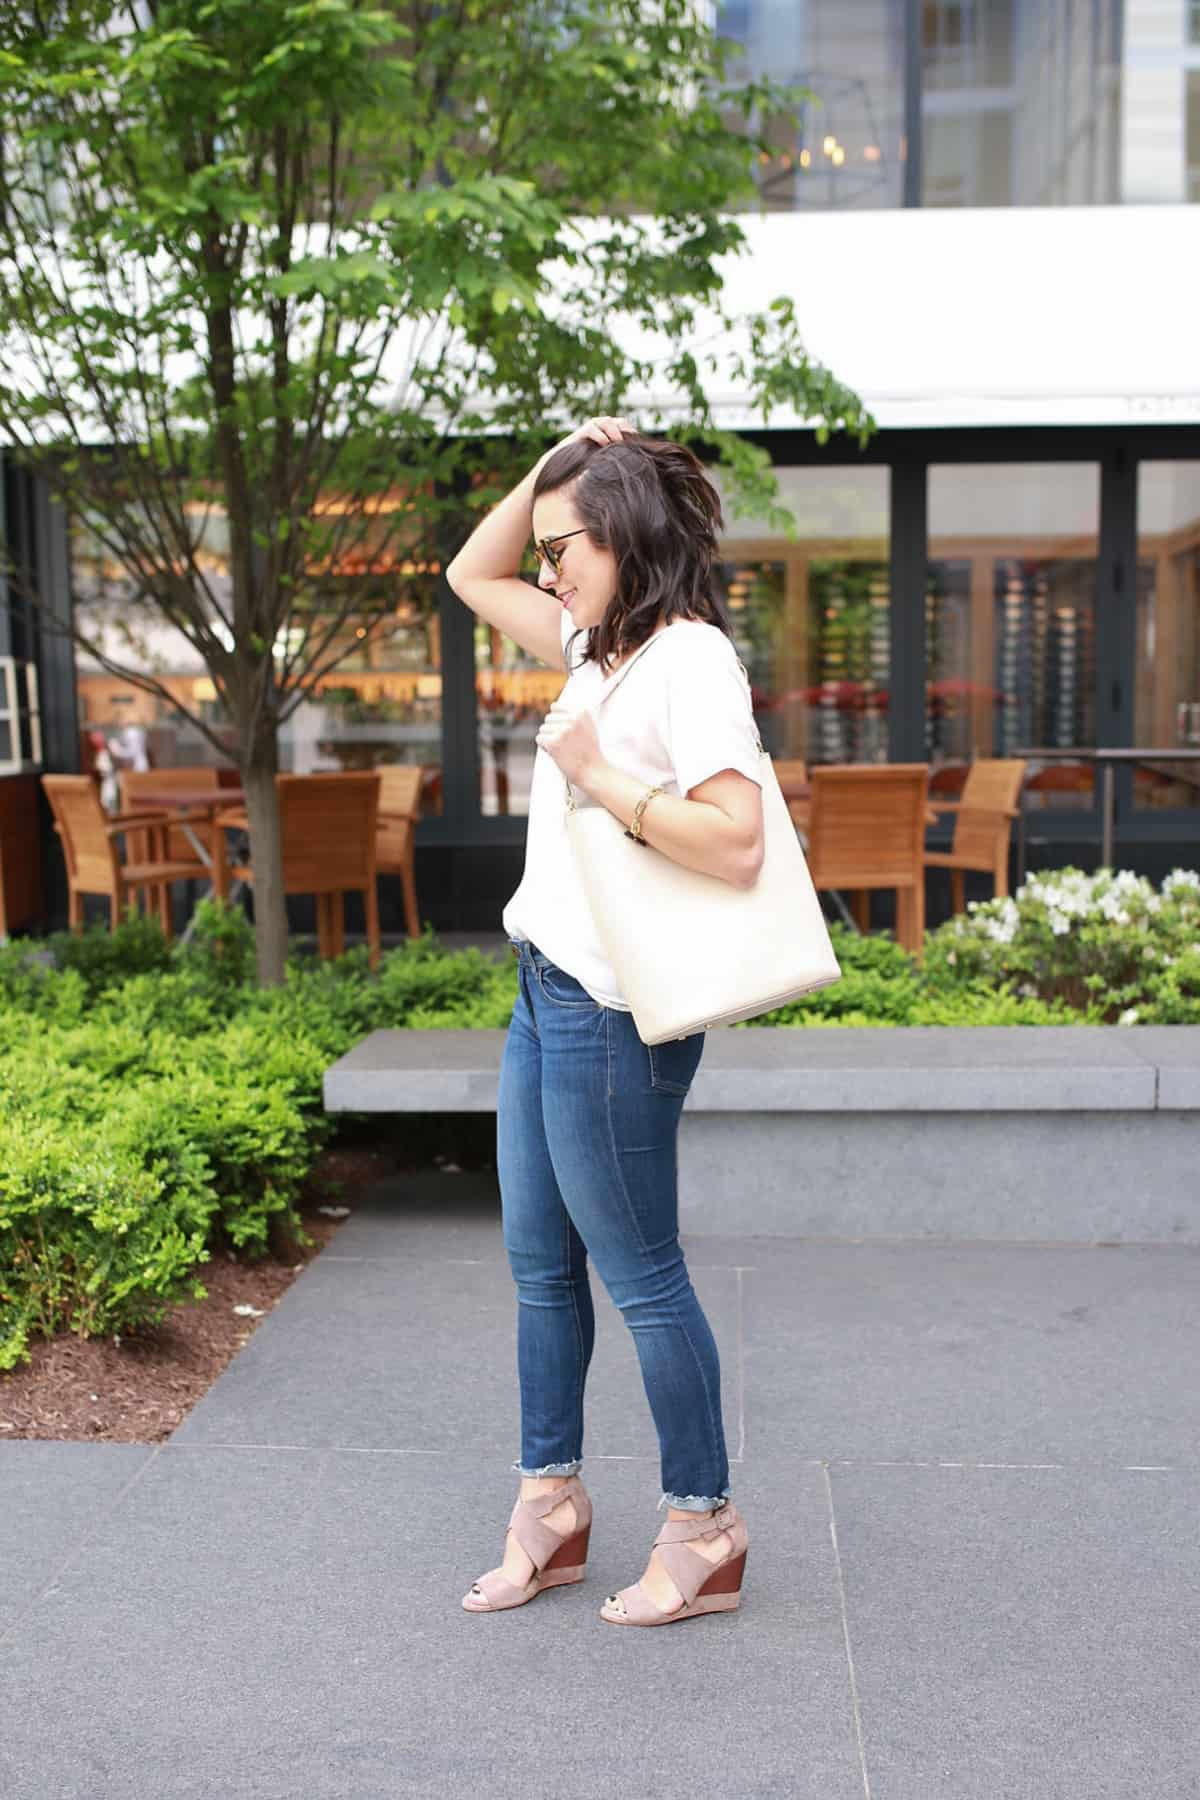 Cooper and Ella Blouse - Travel outfit ideas - My Style Vita @mystylevita